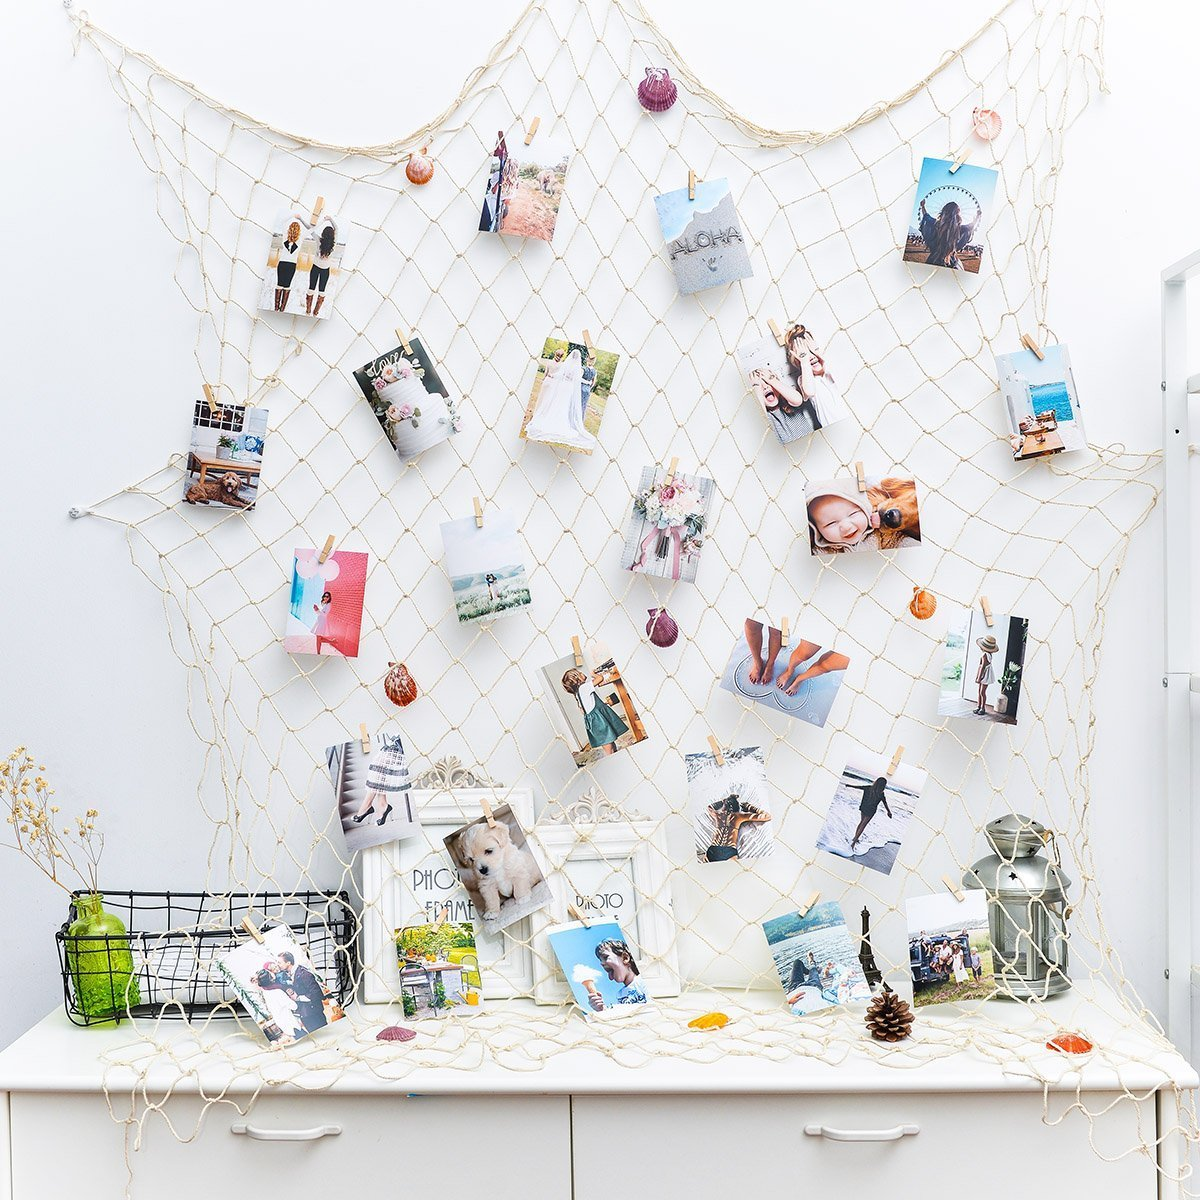 Photo Hanging Display Nautical Fishing Net with 40 Clips - Picture Frames Family Photos Organizer & Collage Artworks for Dorm Bedroom Wedding Birthday Party Deco (Beige) Sunshinetimes